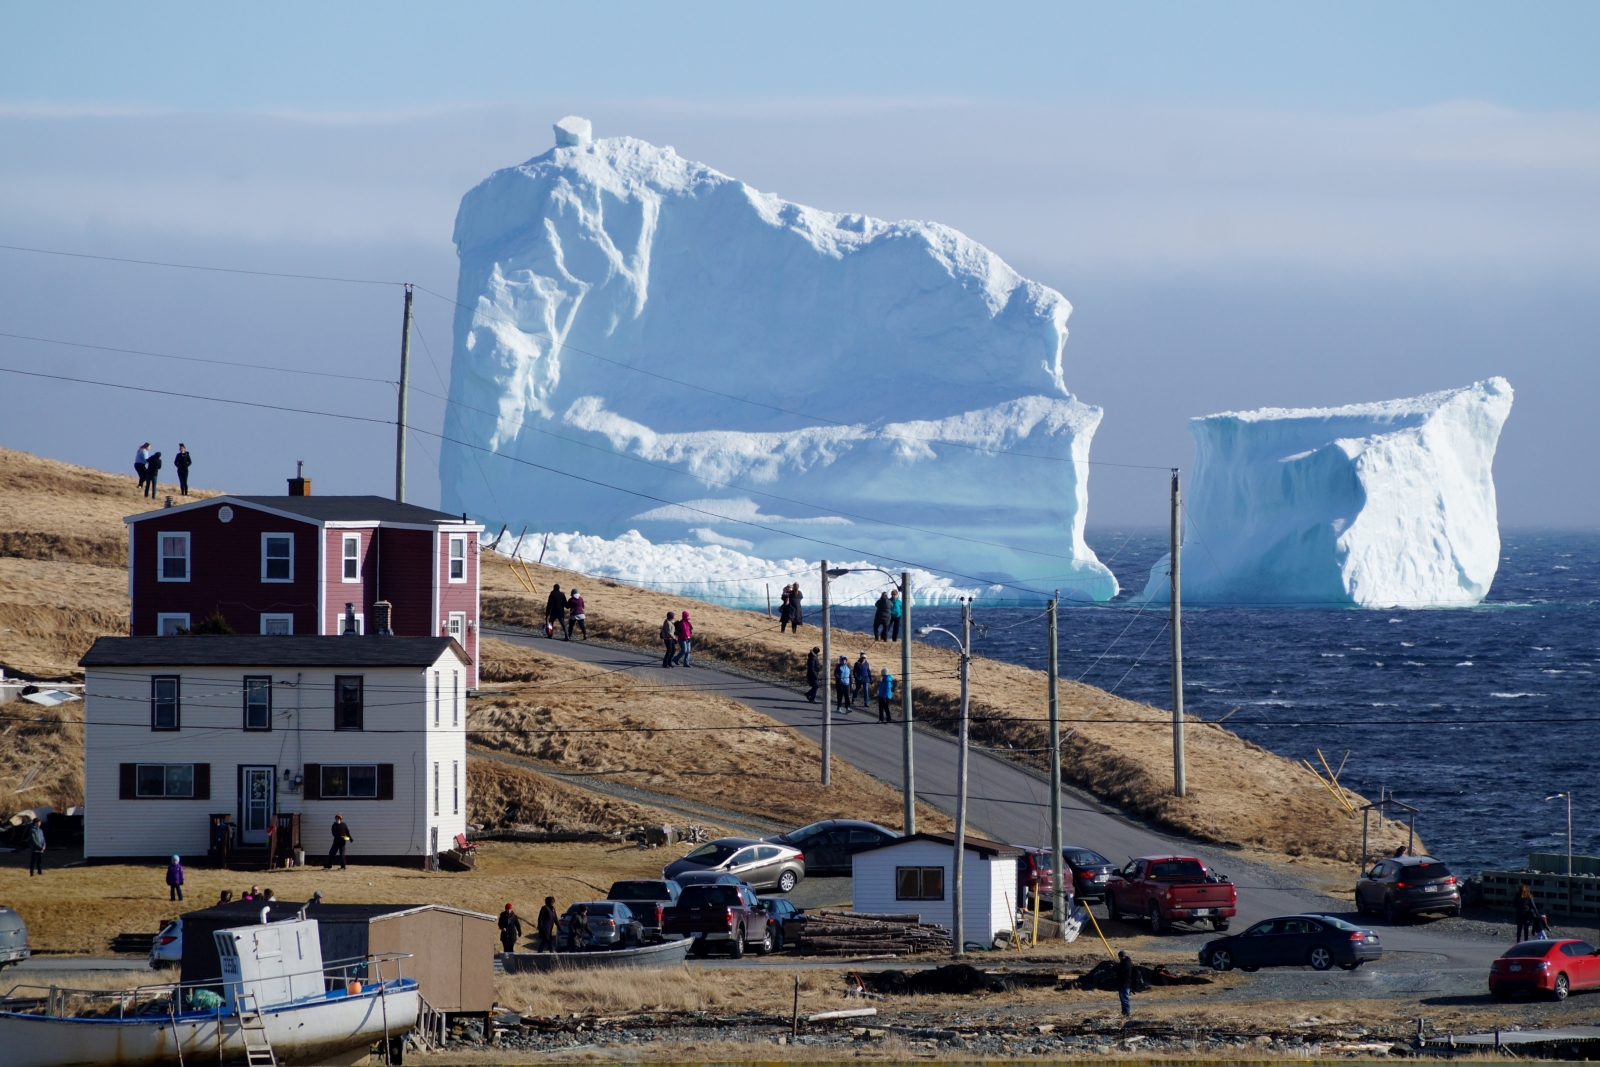 Tourists flock to small Newfoundland town to see towering, 45-metre iceberg